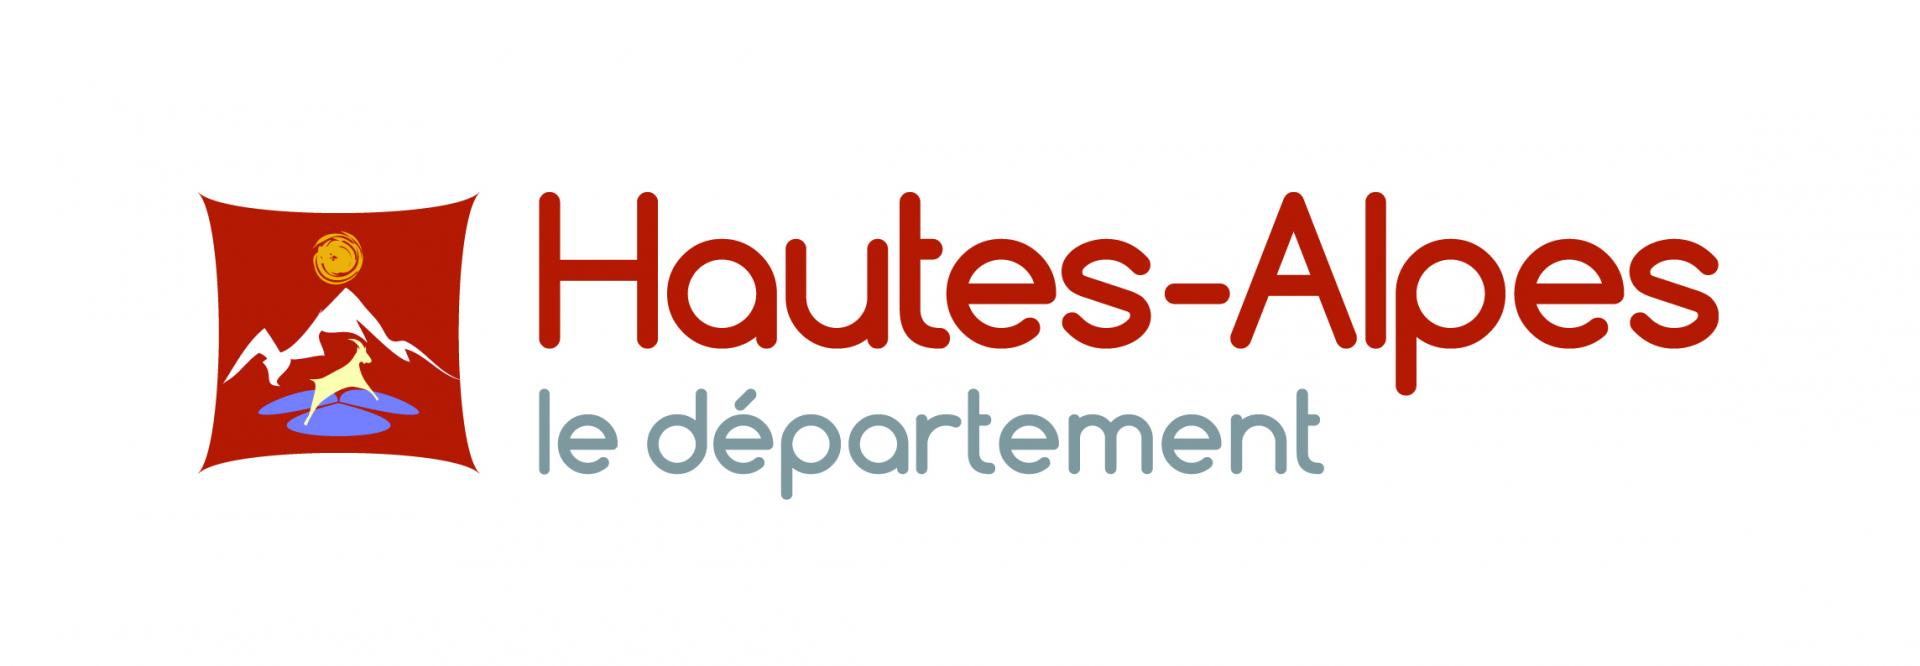 Logo ha departement horizontal couleur jpg2015